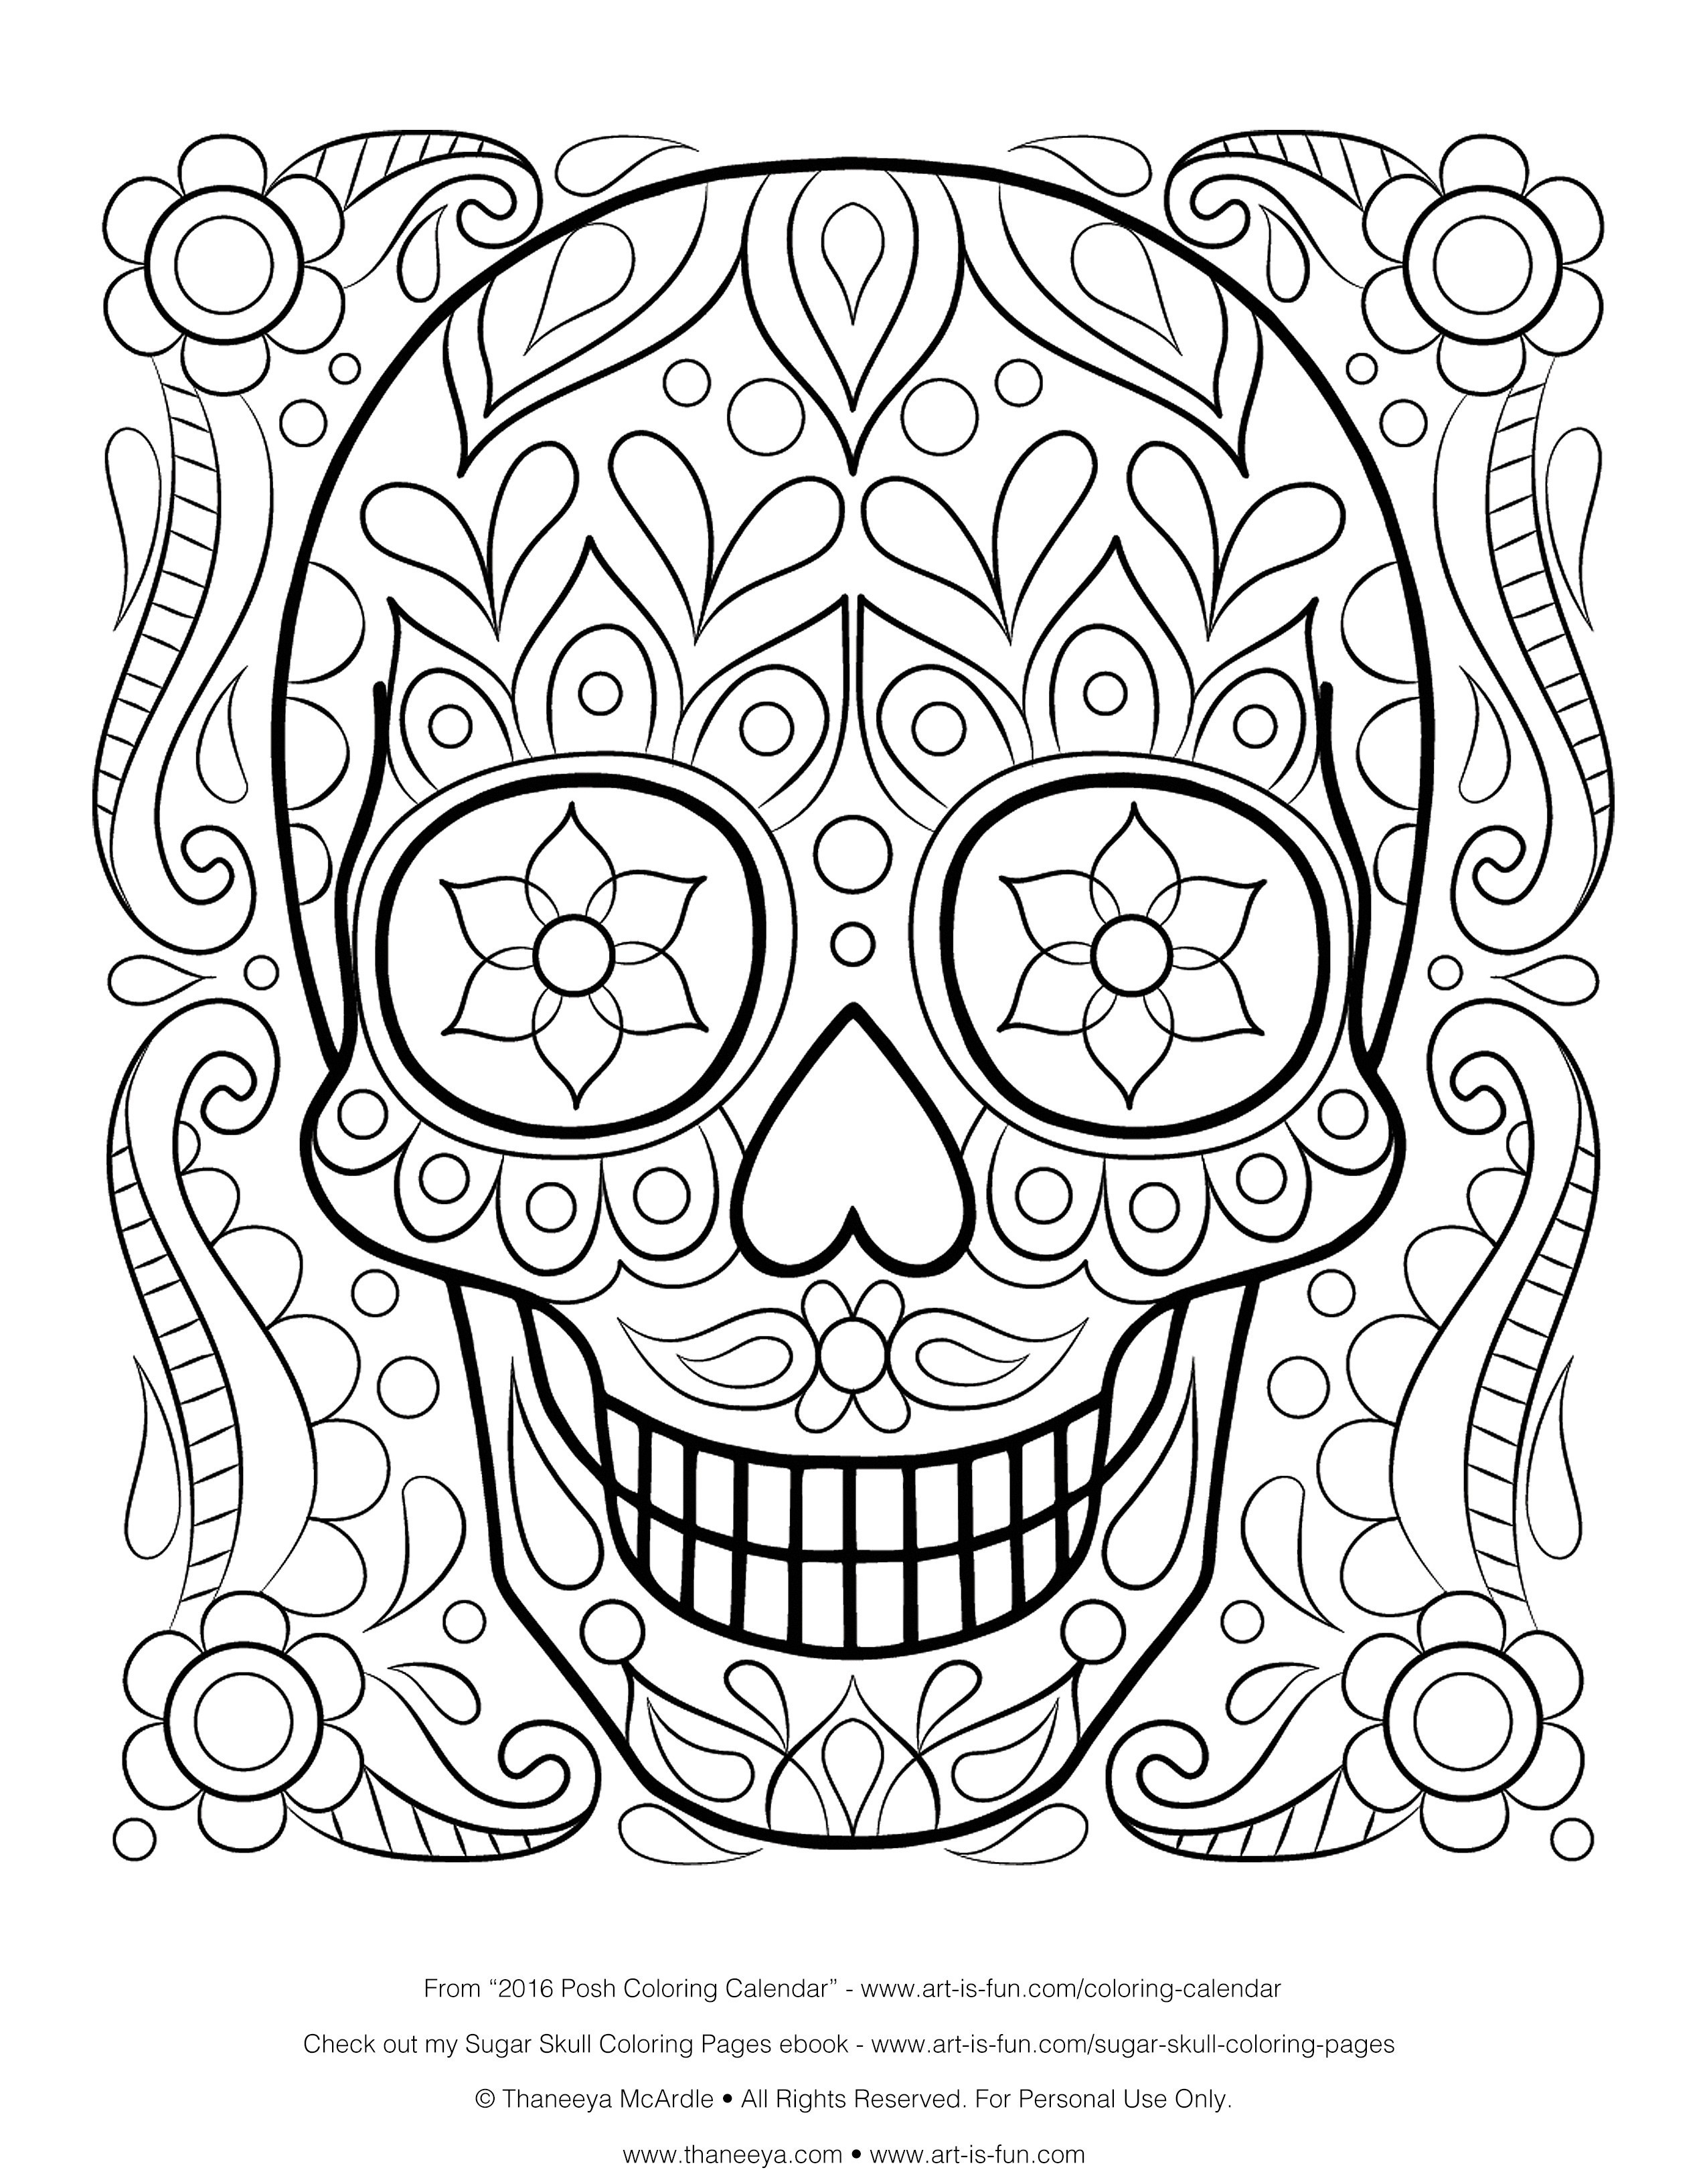 Coloring Pages Of Sugar Skulls  Download 7b - To print for your project